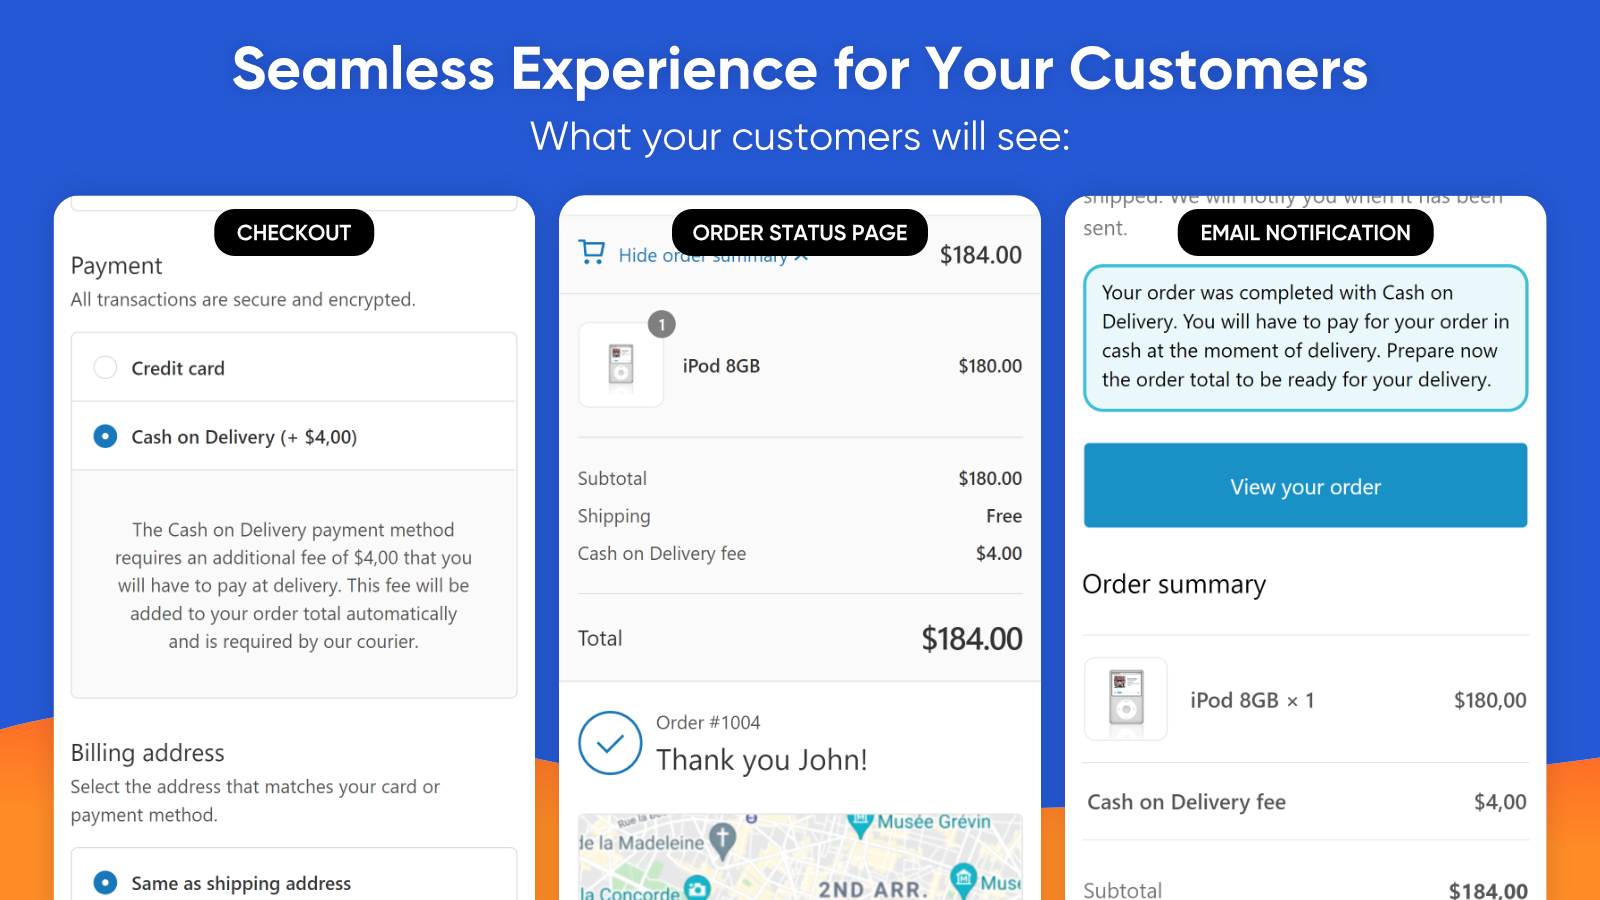 Seamless Experience for Your Customers